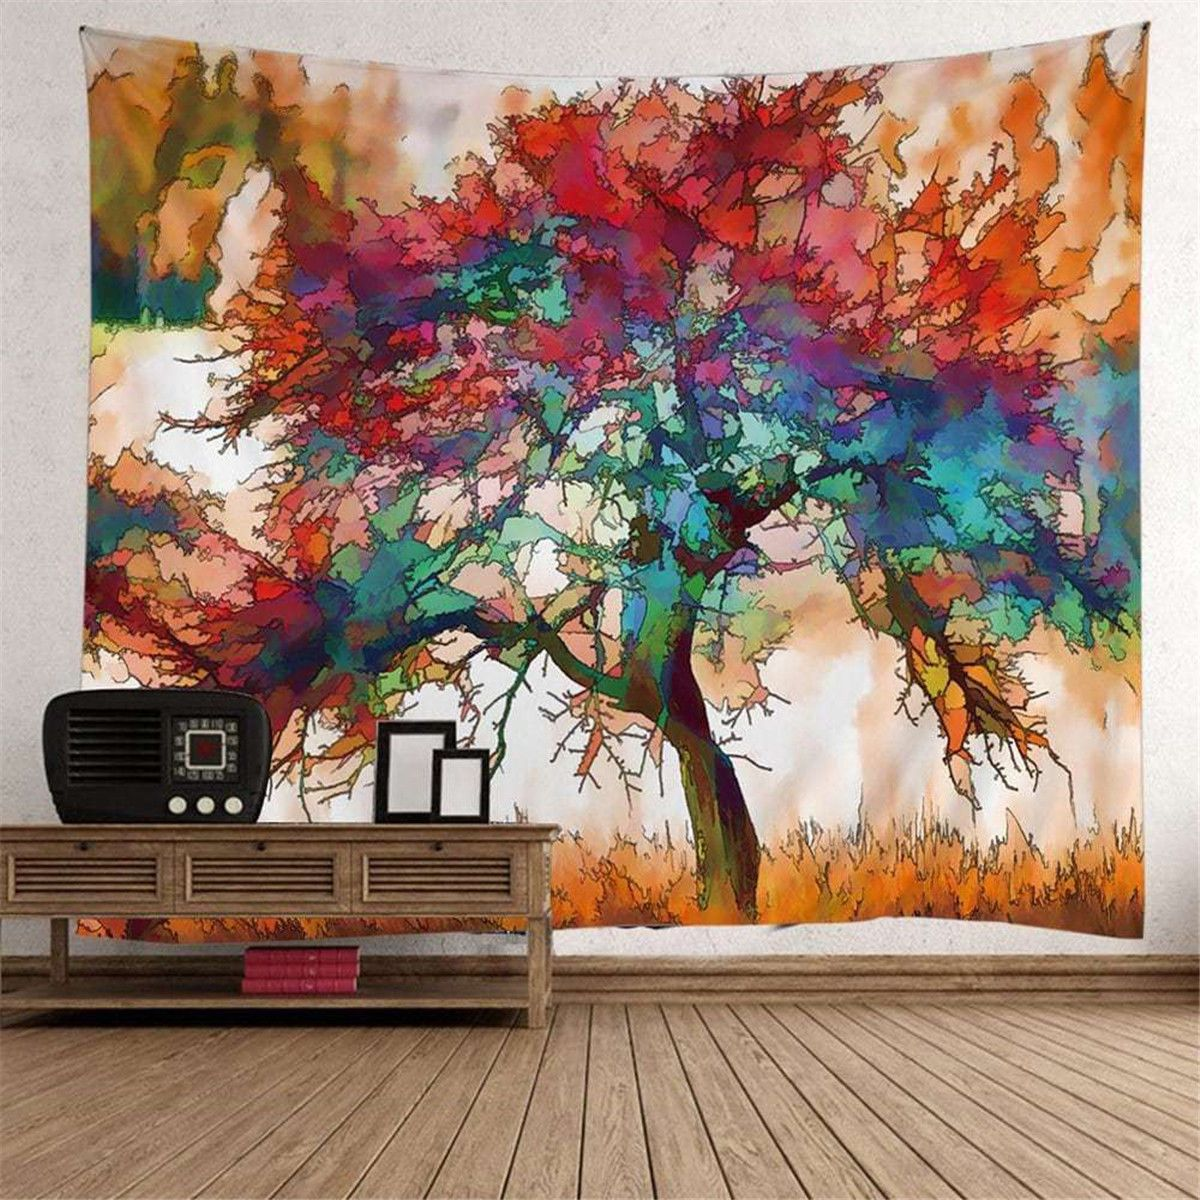 Indian Wall Tapestry Art Amazing Design